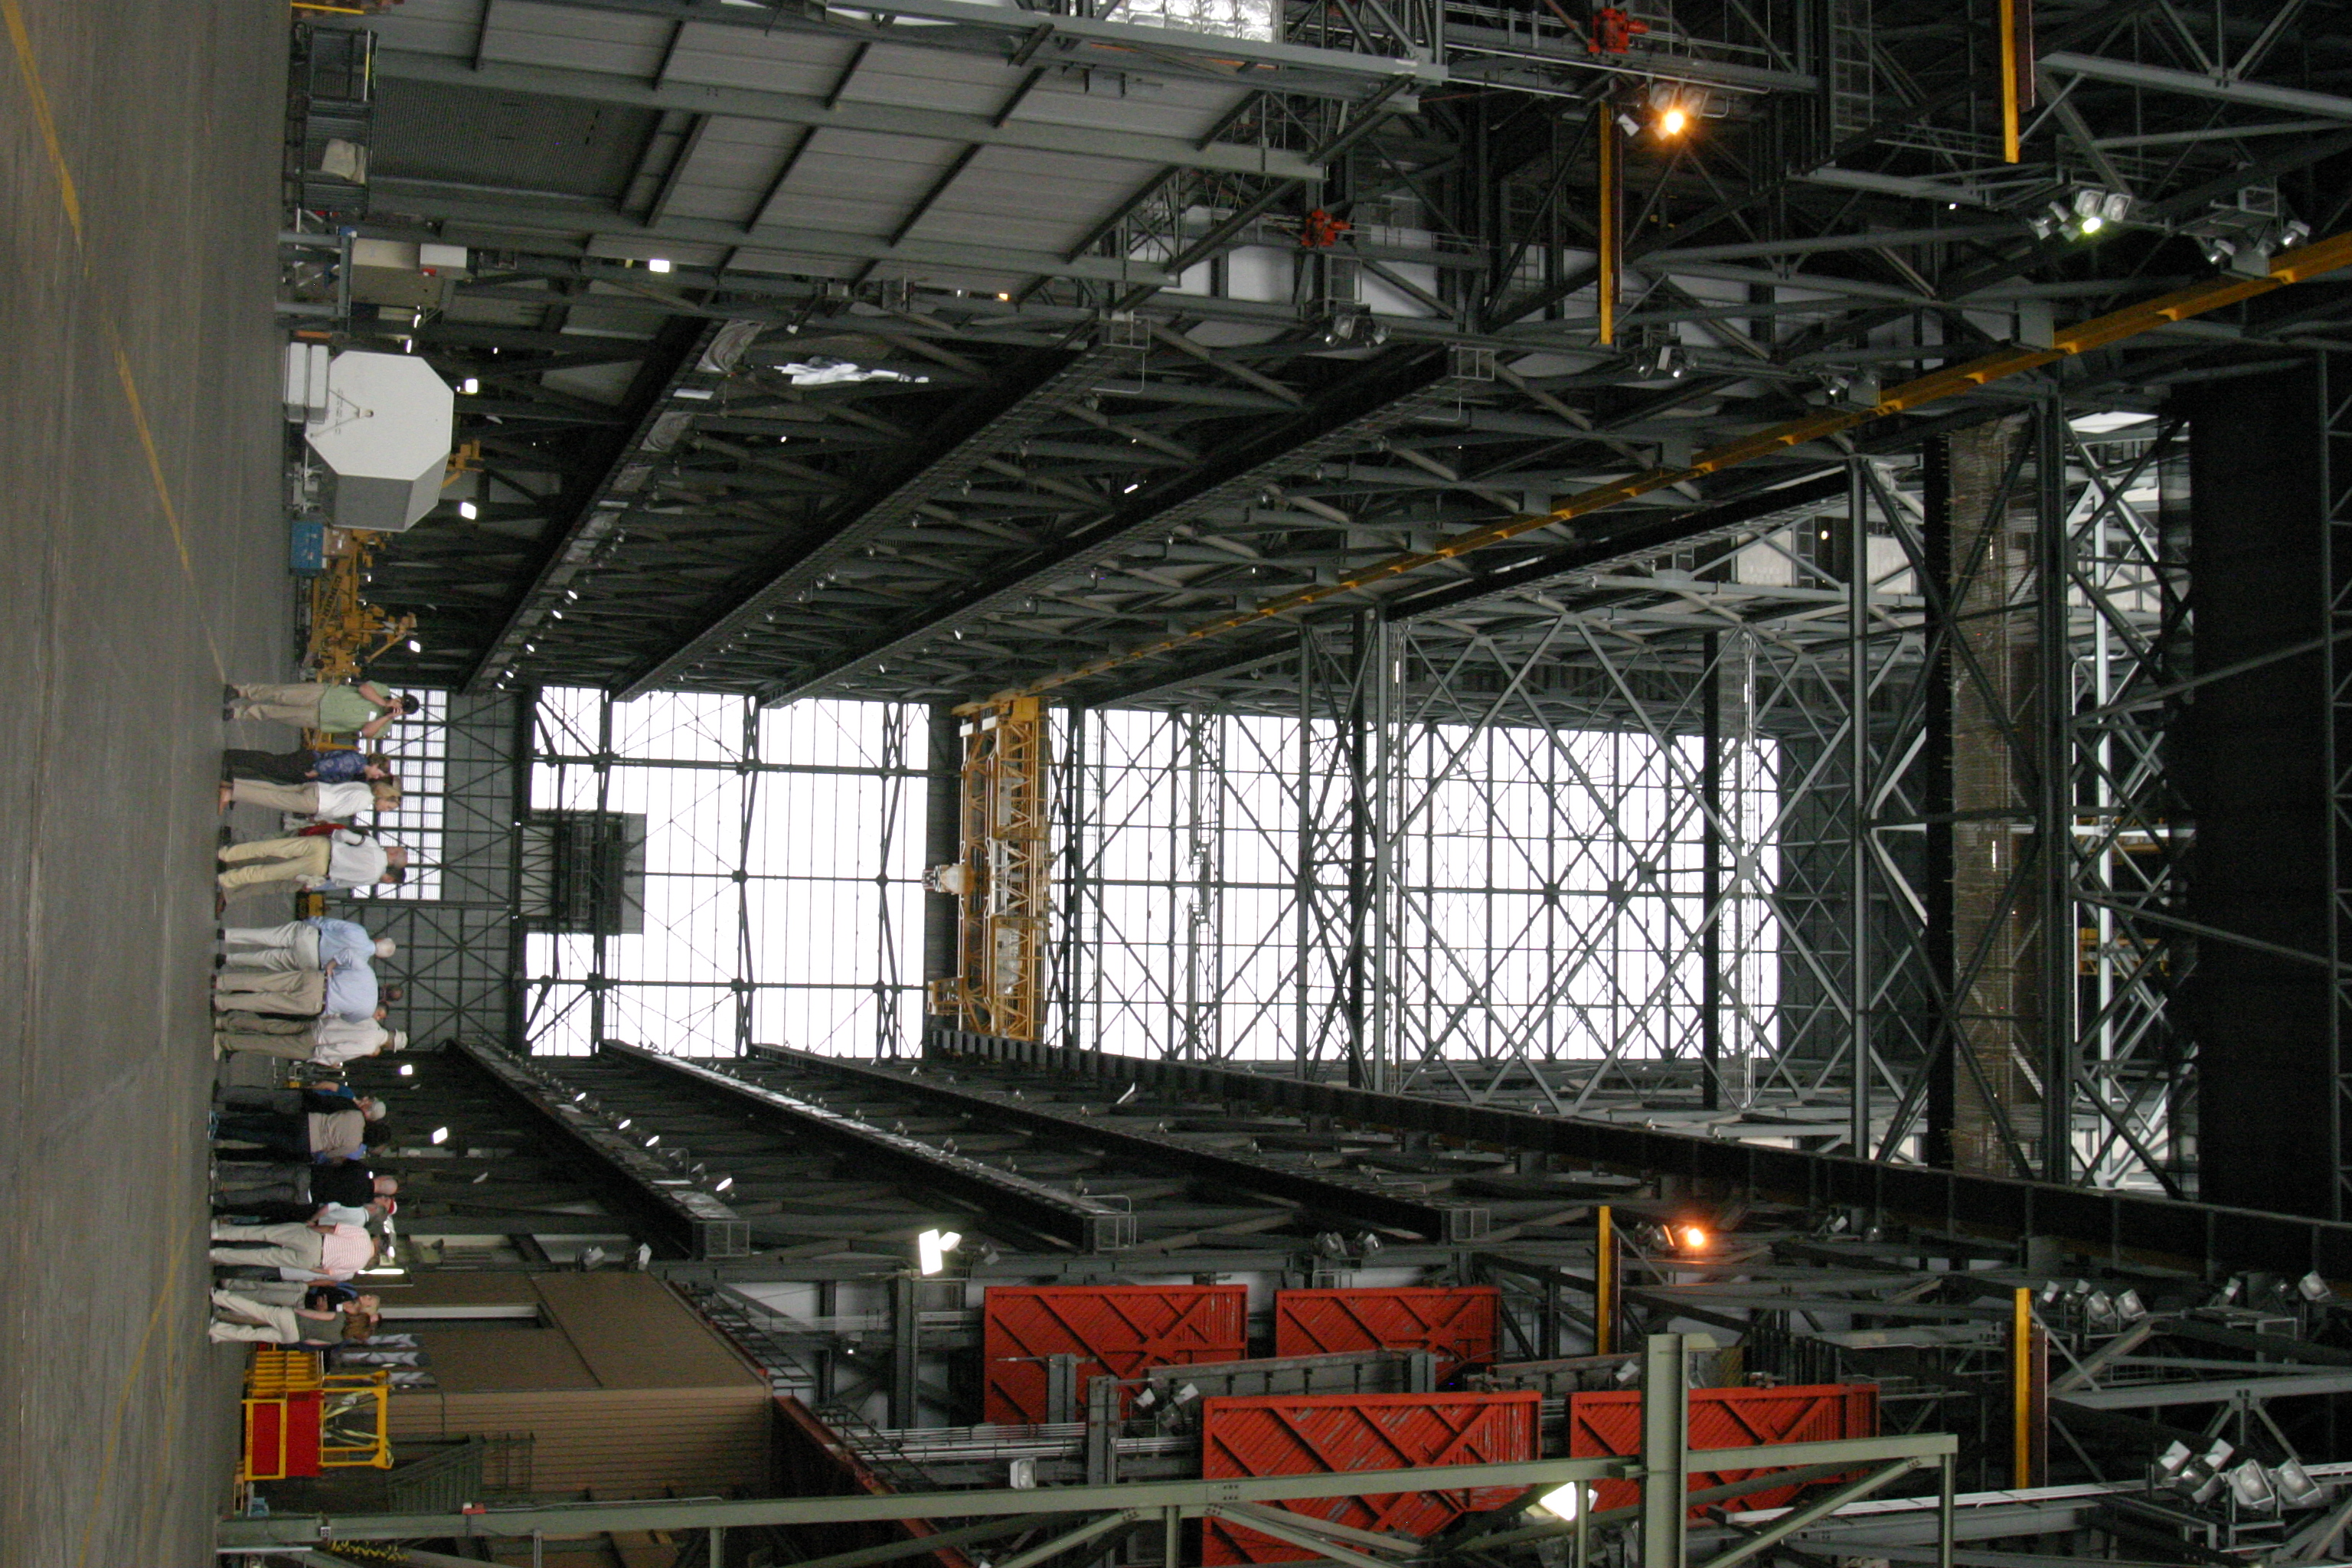 nasa building from inside - photo #2